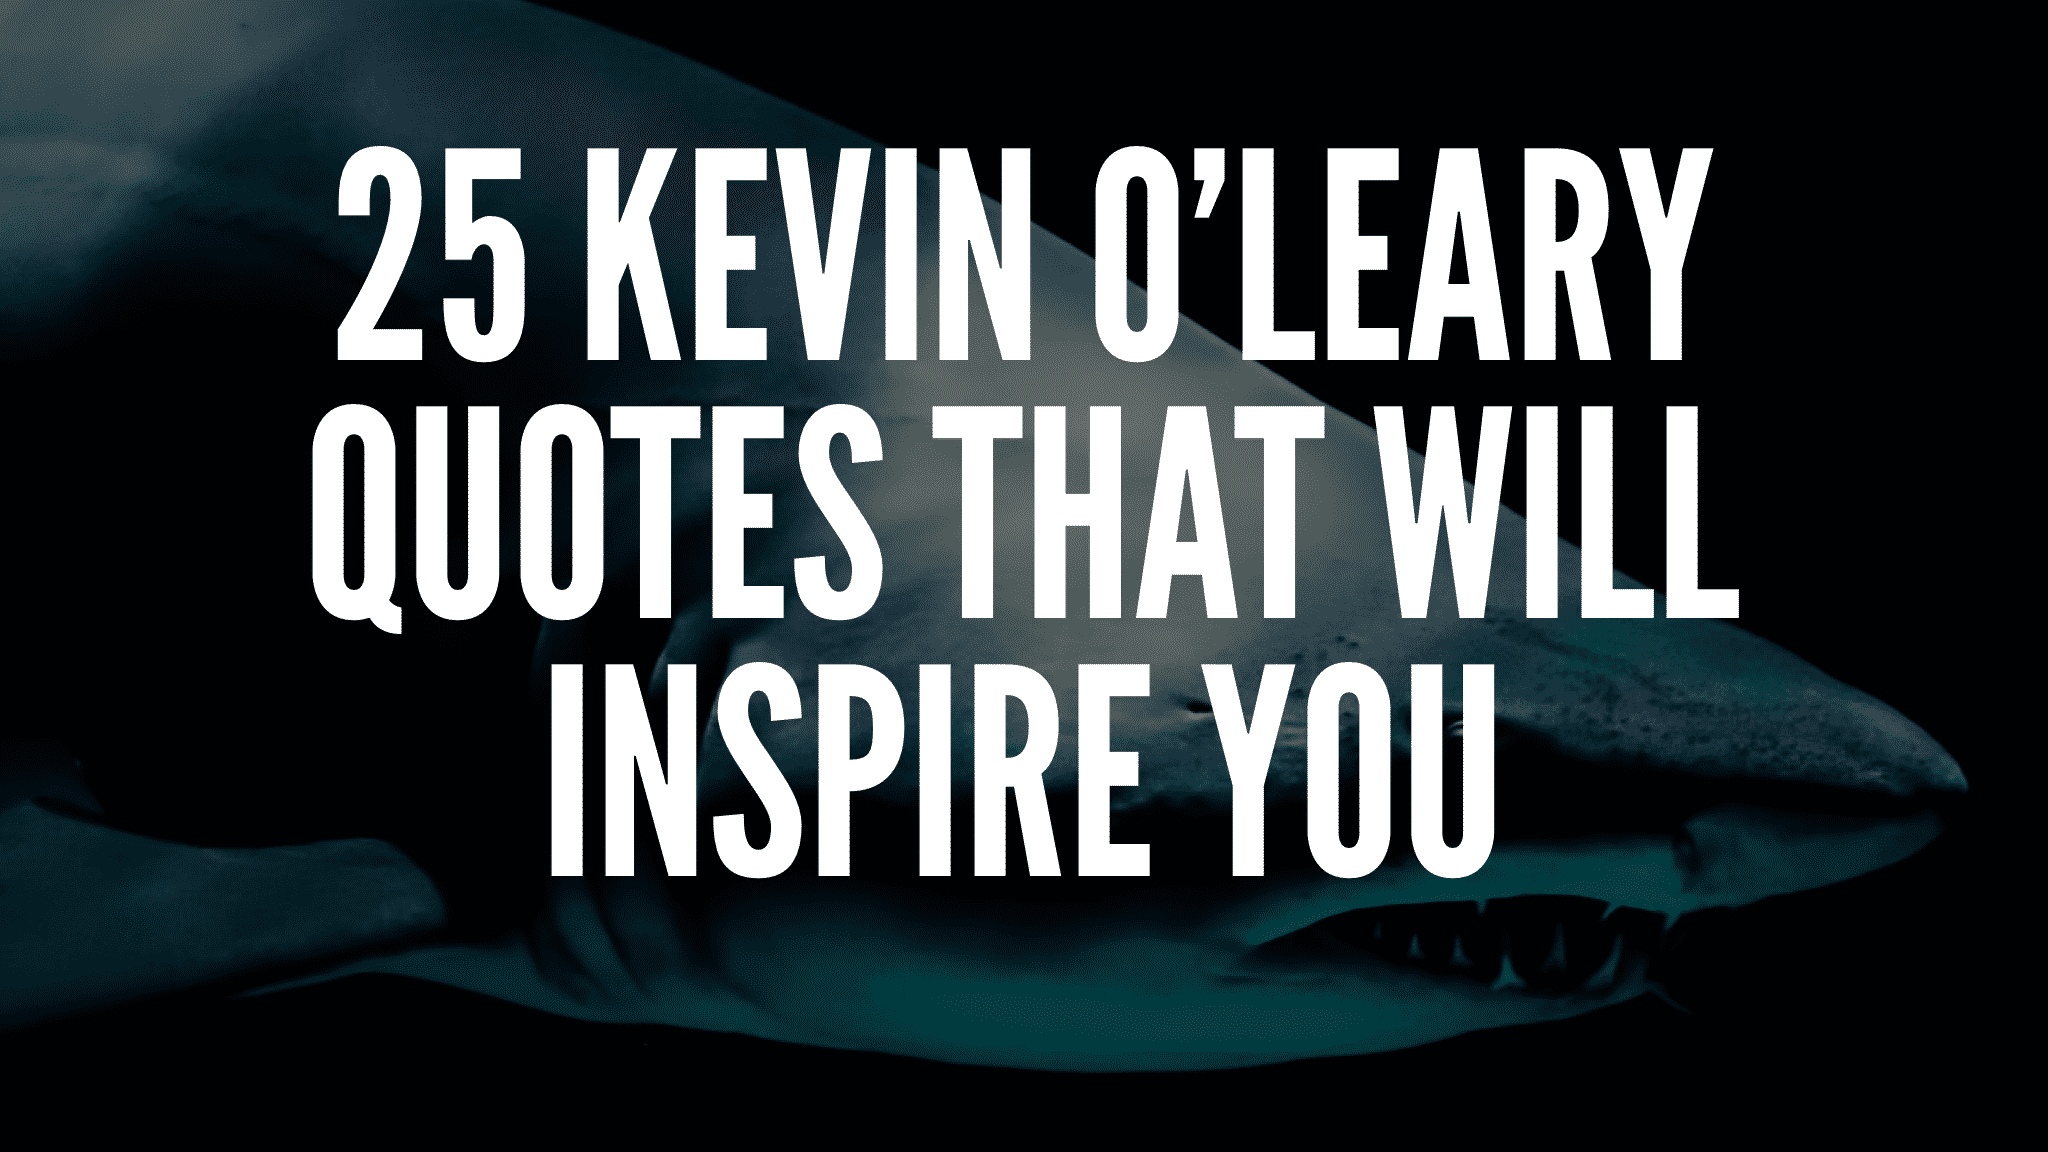 25 Kevin O'Leary Quotes That Will Inspire You